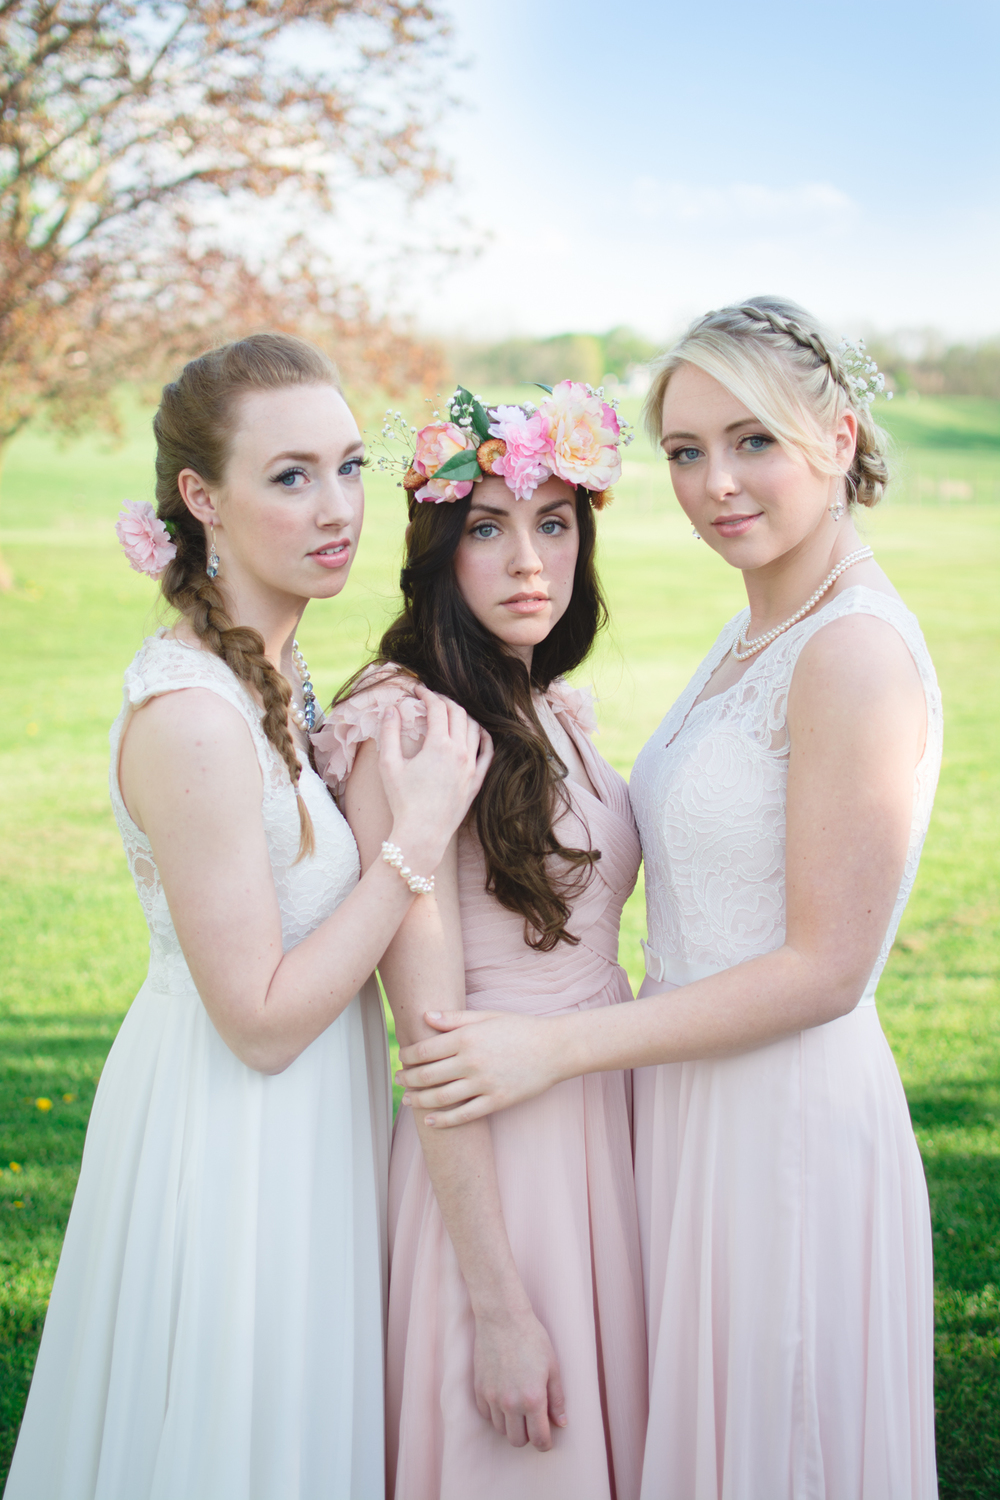 Makeup: Anna Sky Beauty Hair: Christine Mitchell  Jewelry: Marnie Artisan Jewelry  Dresses: Stephanie's Bridal Location: Meadow Breeze Farm  Bouquet + Floral Crown: Julie Floro (of Julie Floro Photography) Models: Jenna Paff, Emily DiGrazio, Olivia Carney